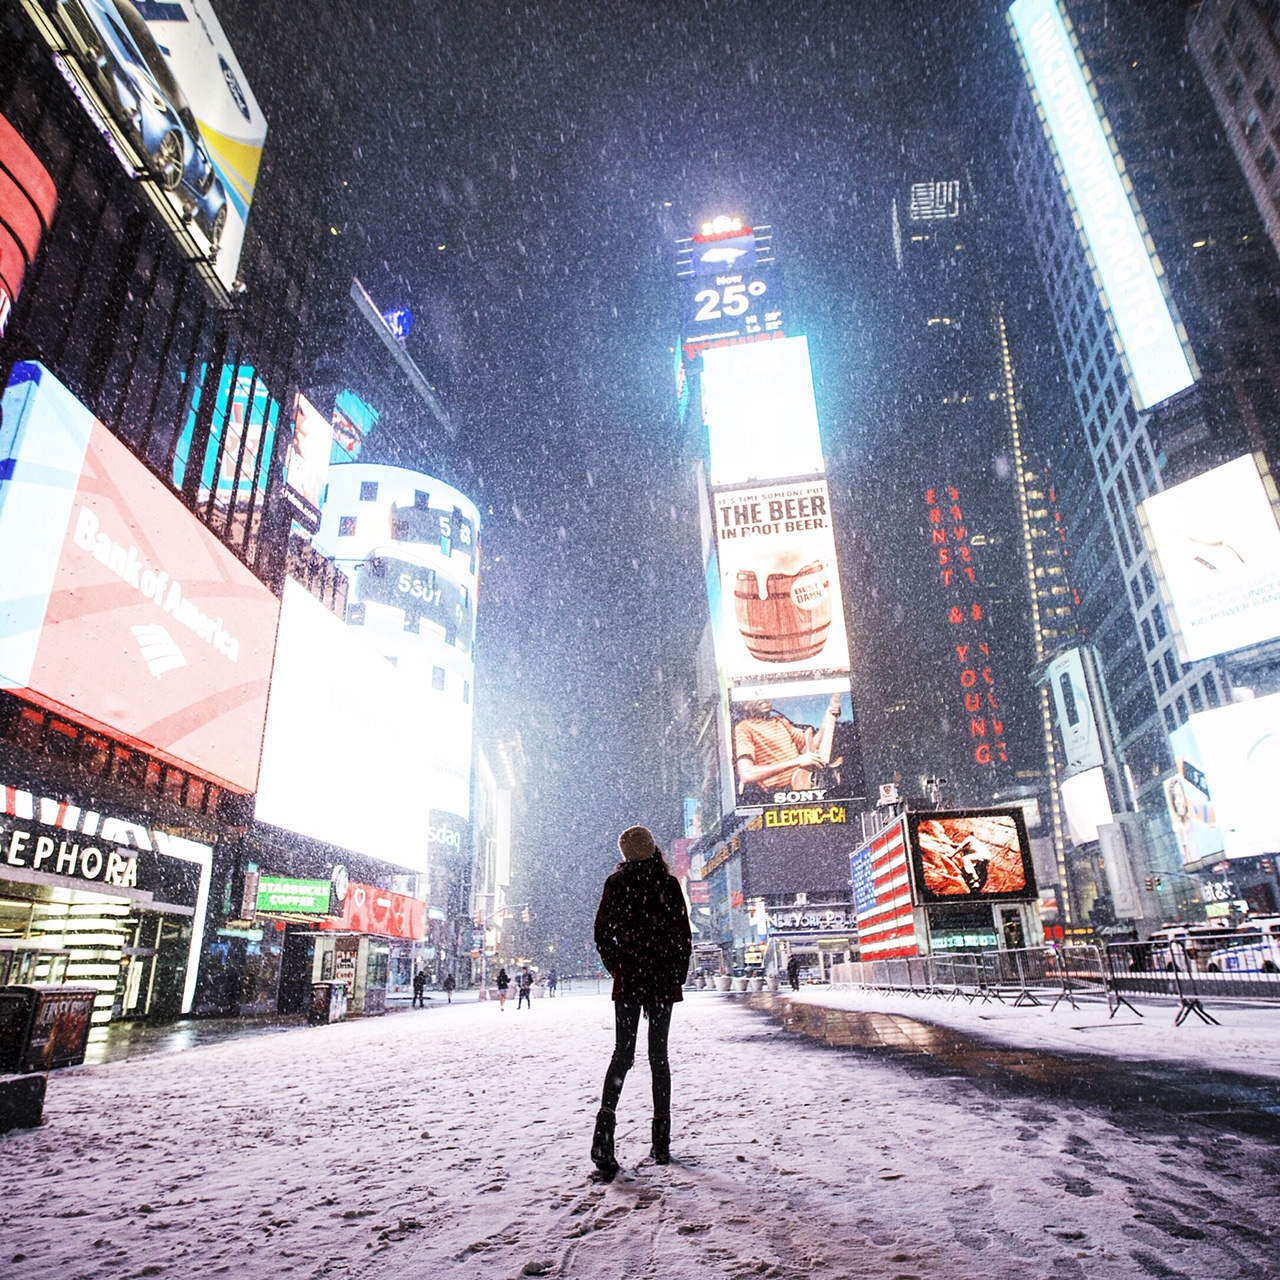 Times Square Snow Storm Blizzard NJ NYC New Jersey New York City